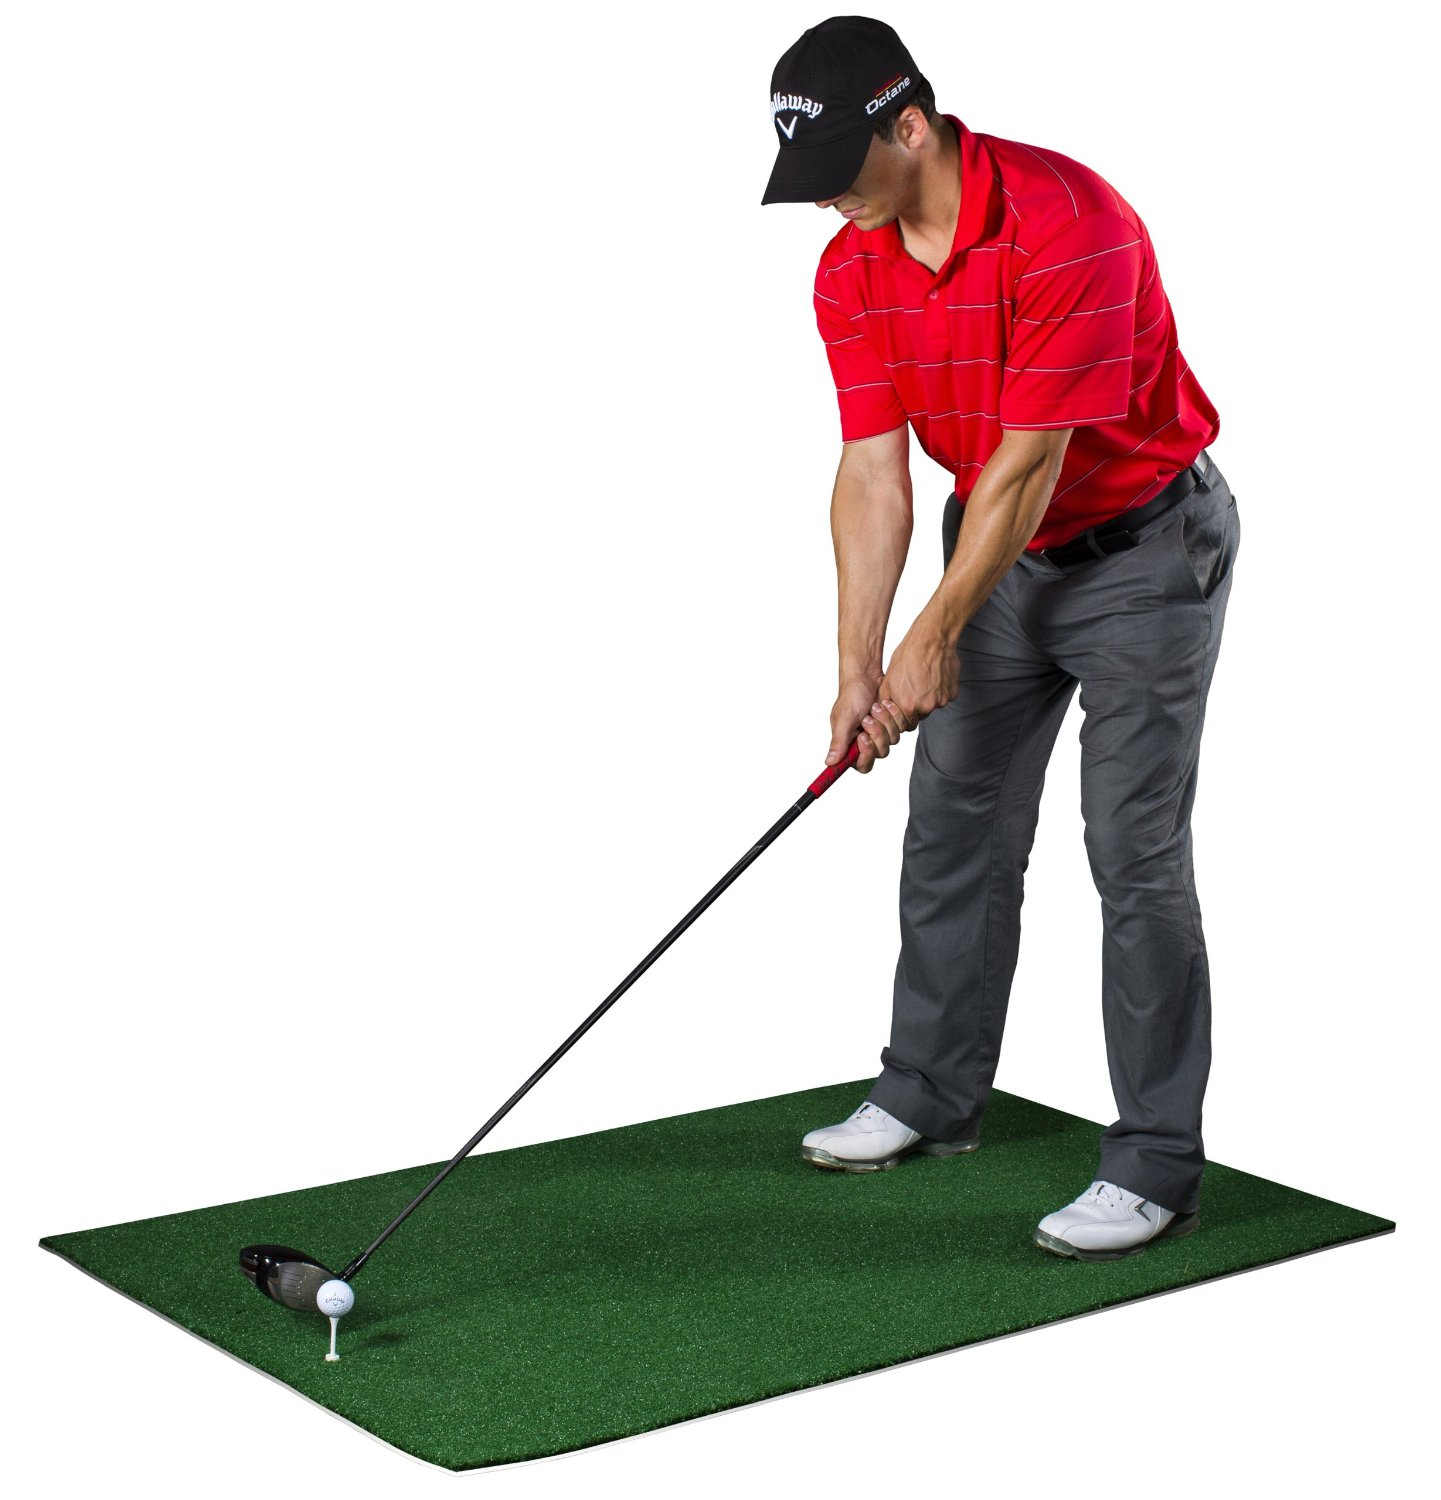 sliding aid ball trainers position rockbottomgolf aids com training accessories swing alignment trainer golf stick